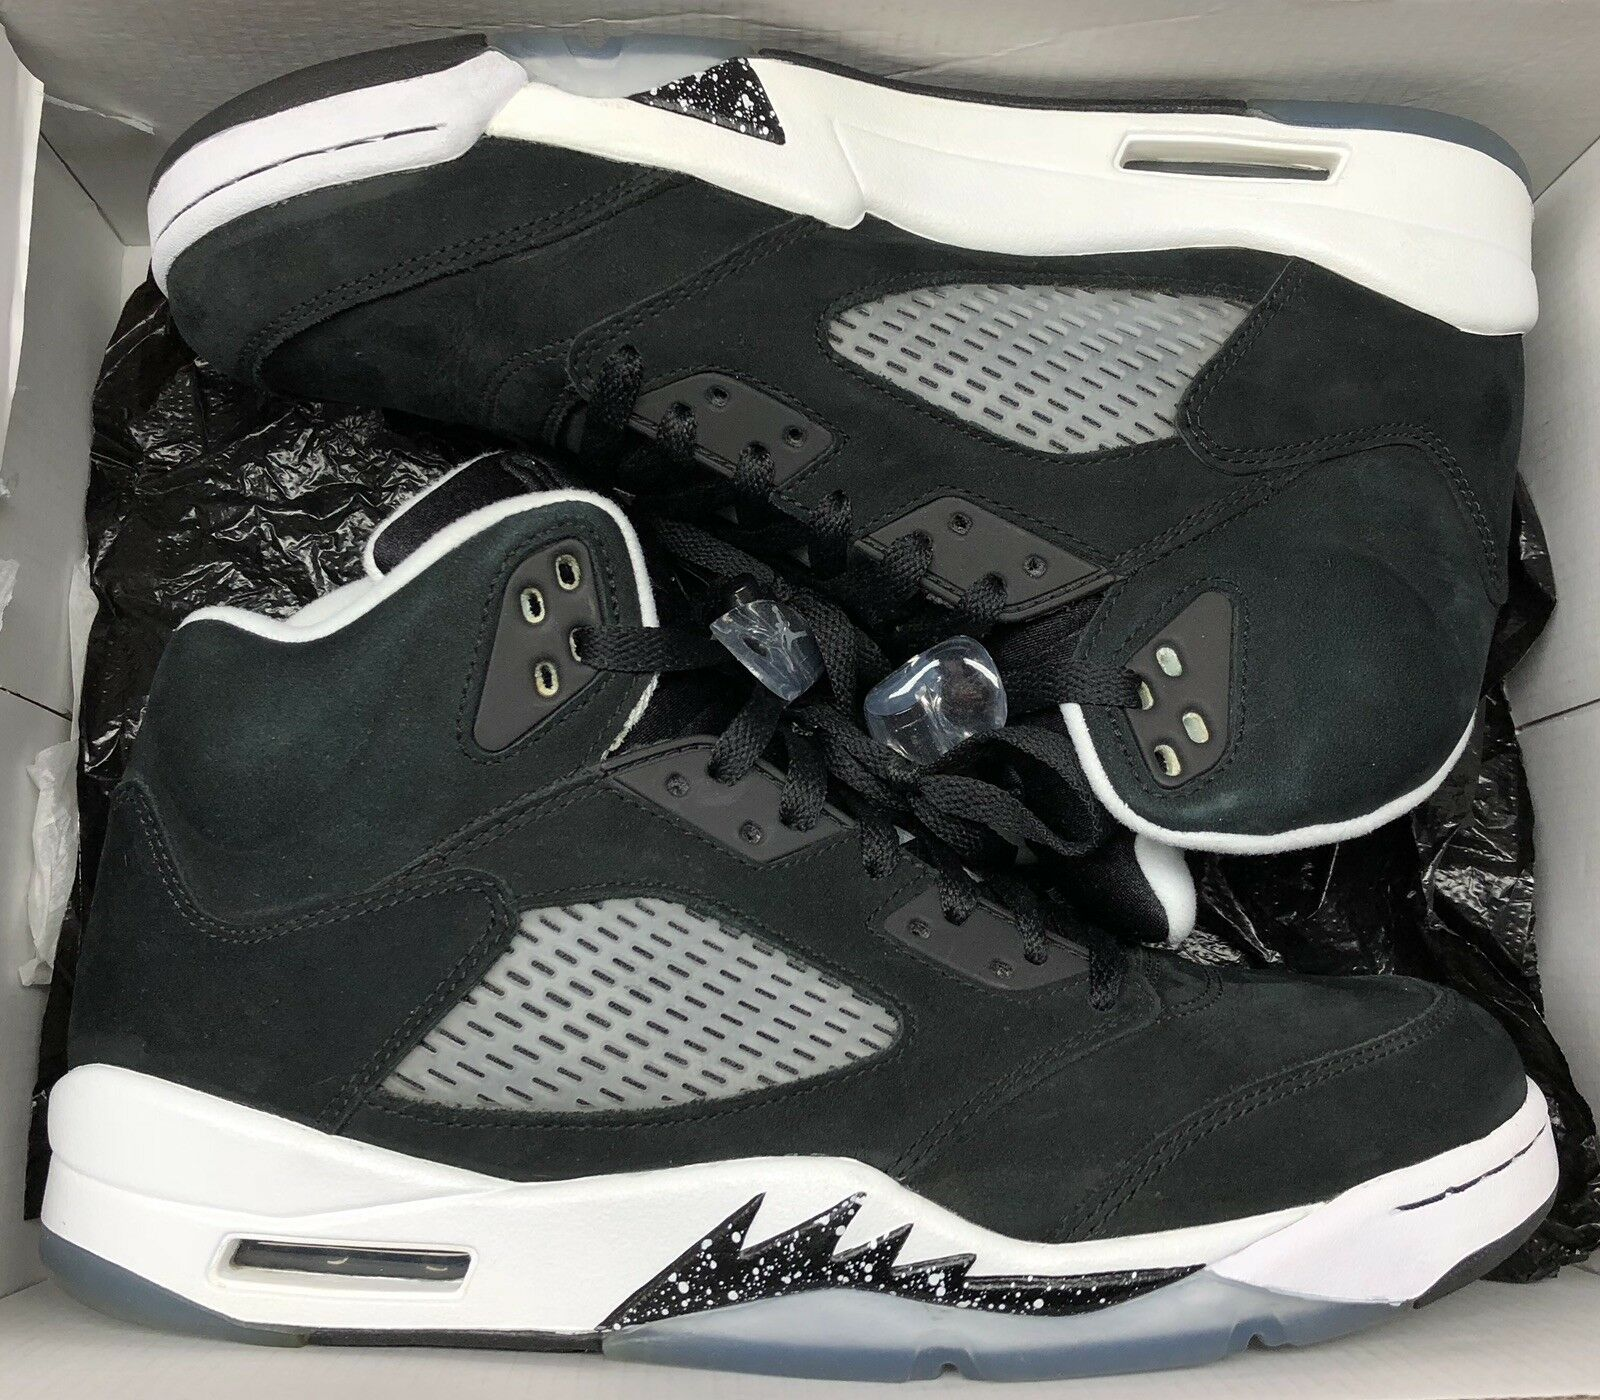 Jordan Retro V 5 Oreo nero bianca grigio Metallic Grape 136027-035 Sz 10